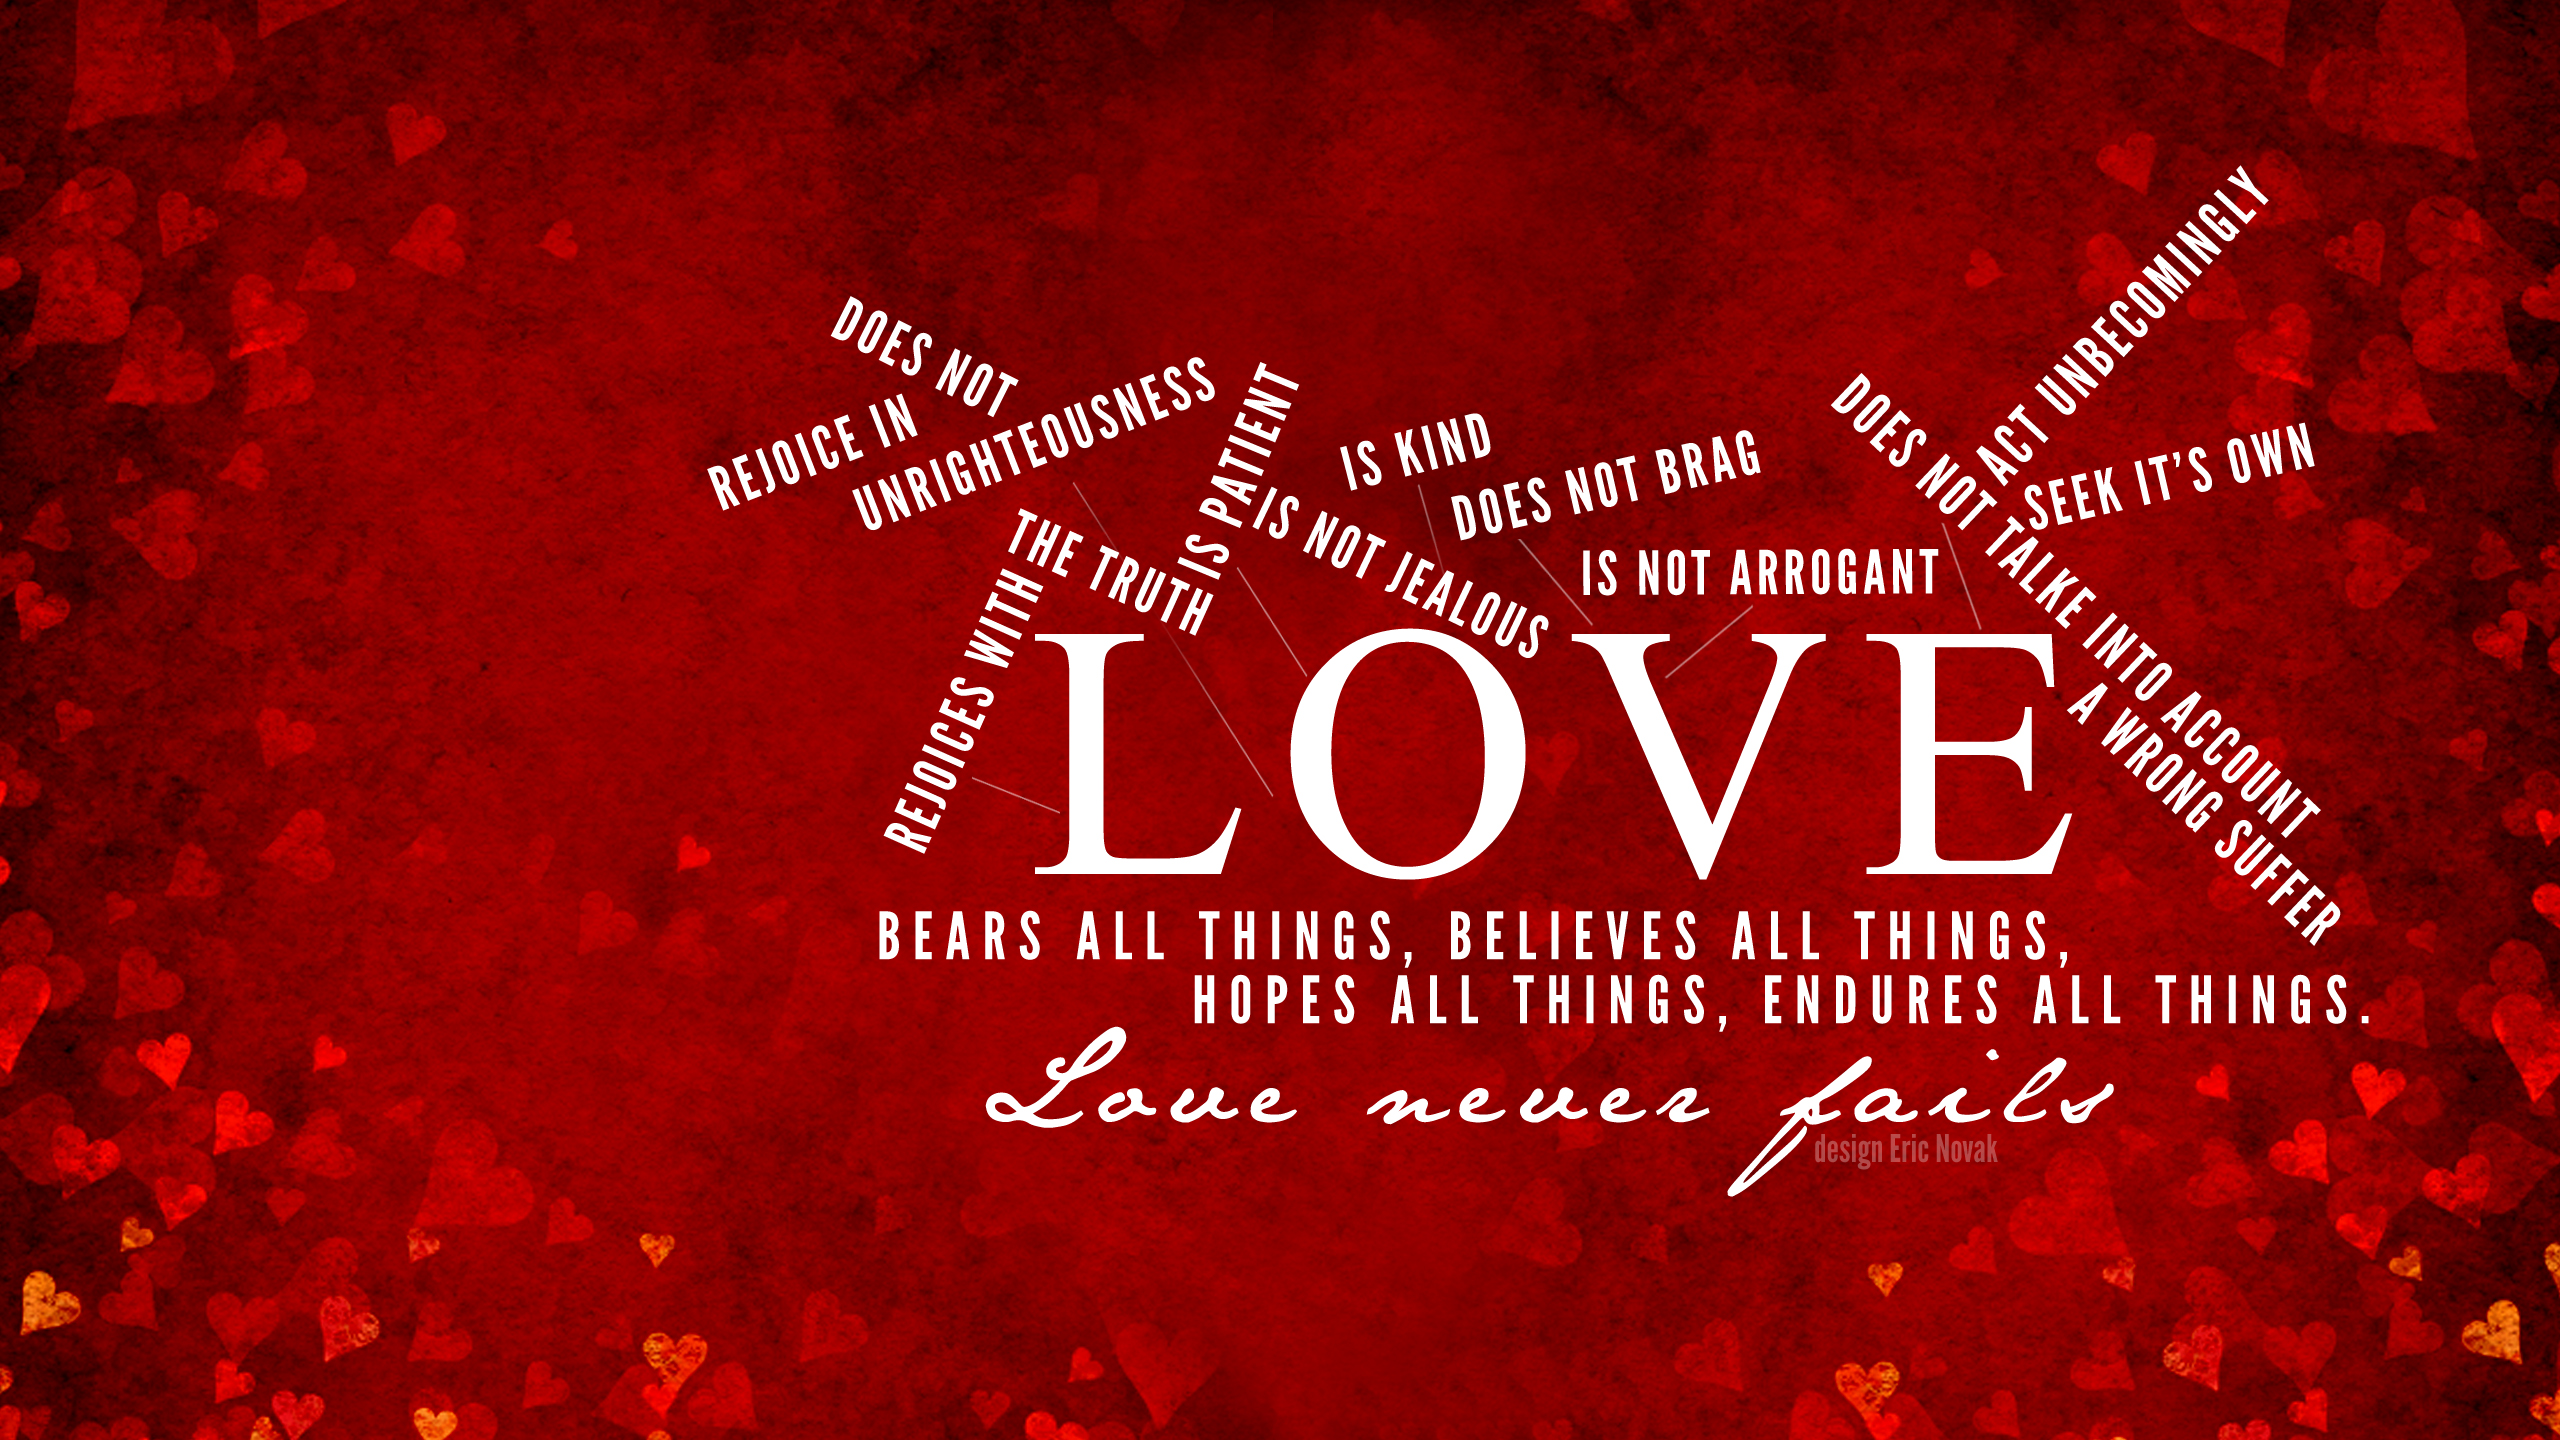 Love Wallpapers Sites List : christian Quotes For February. QuotesGram